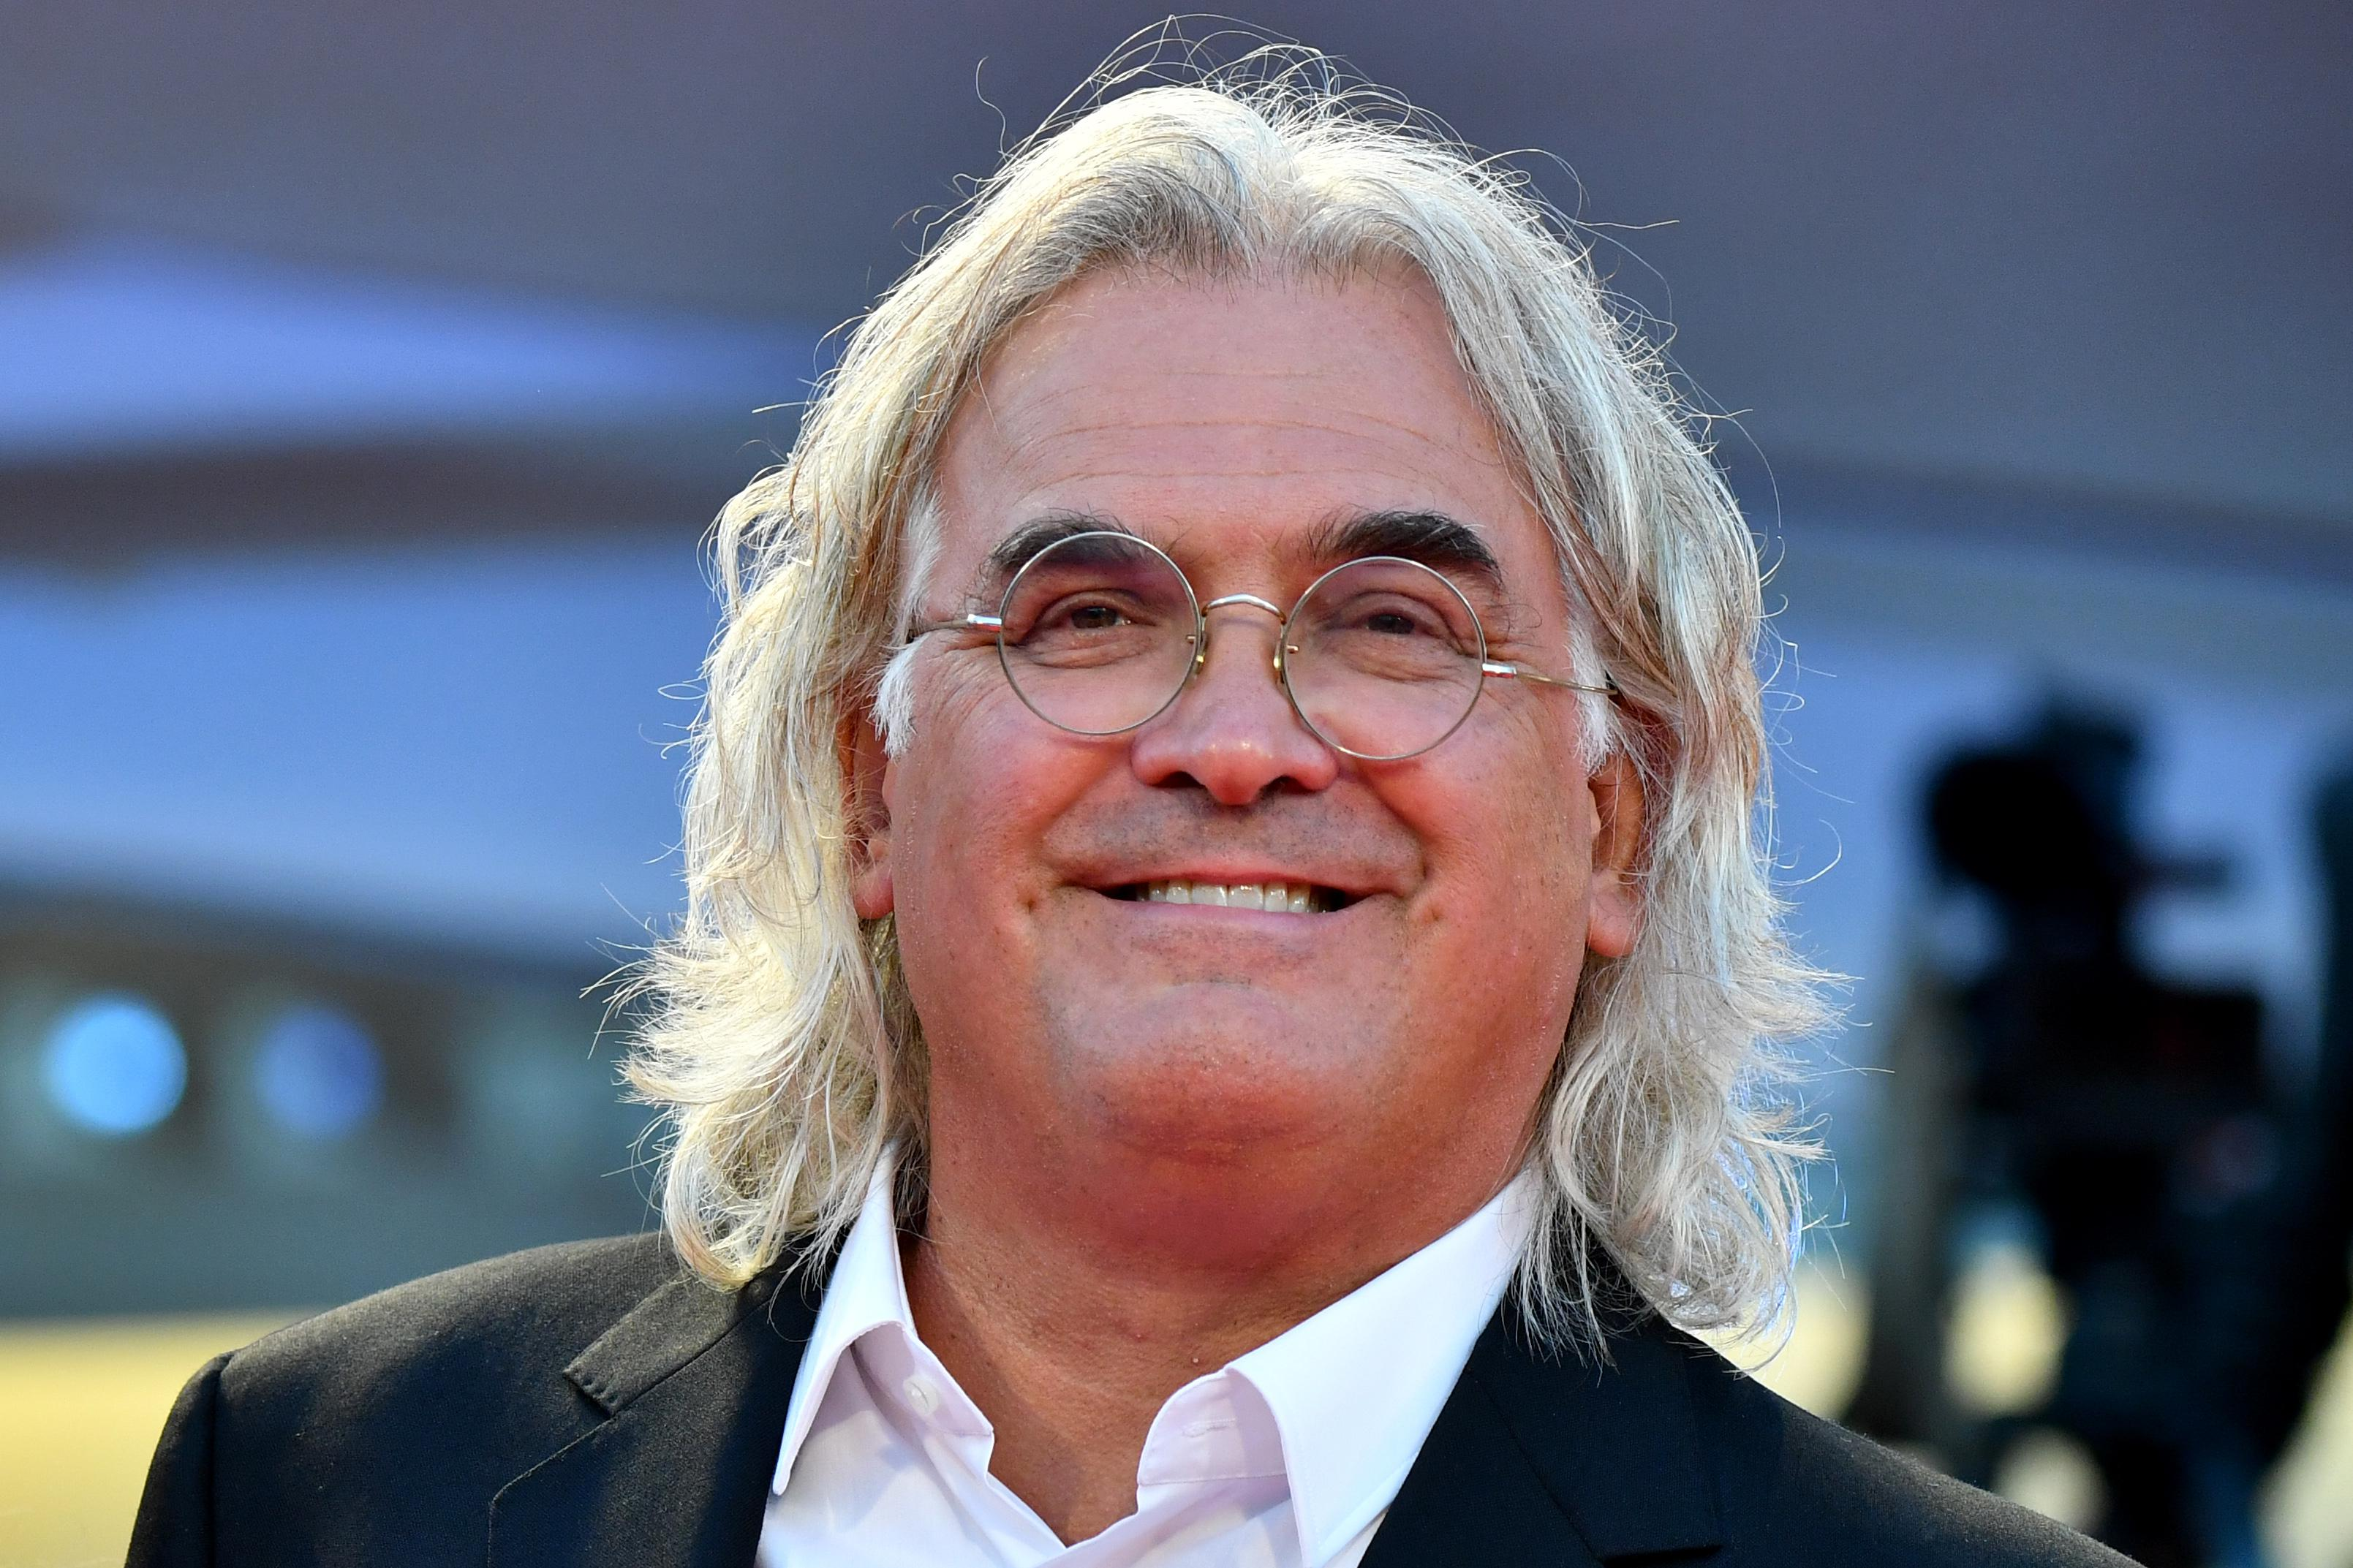 Director Paul Greengrass at the Venice Film Festival on Sept. 5.